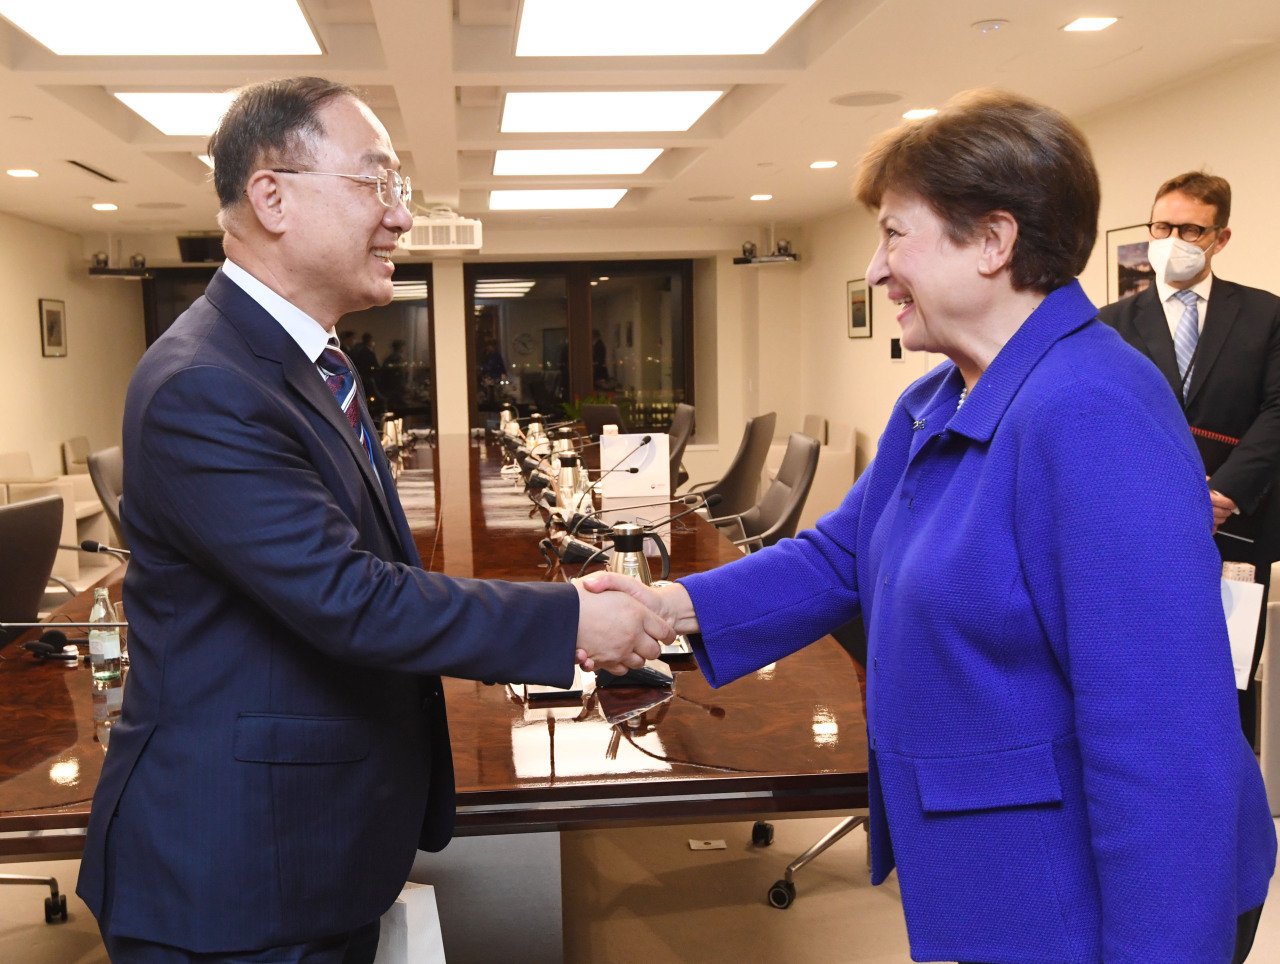 This photo, provided by the Ministry of Economy and Finance on Wednesday, shows South Korean Finance Minister Hong Nam-ki (L) shaking hands with Kristalina Georgieva, managing director of the International Monetary Fund, ahead of their meeting in Washington, D.C. on Tuesday (local time). (Yonhap)